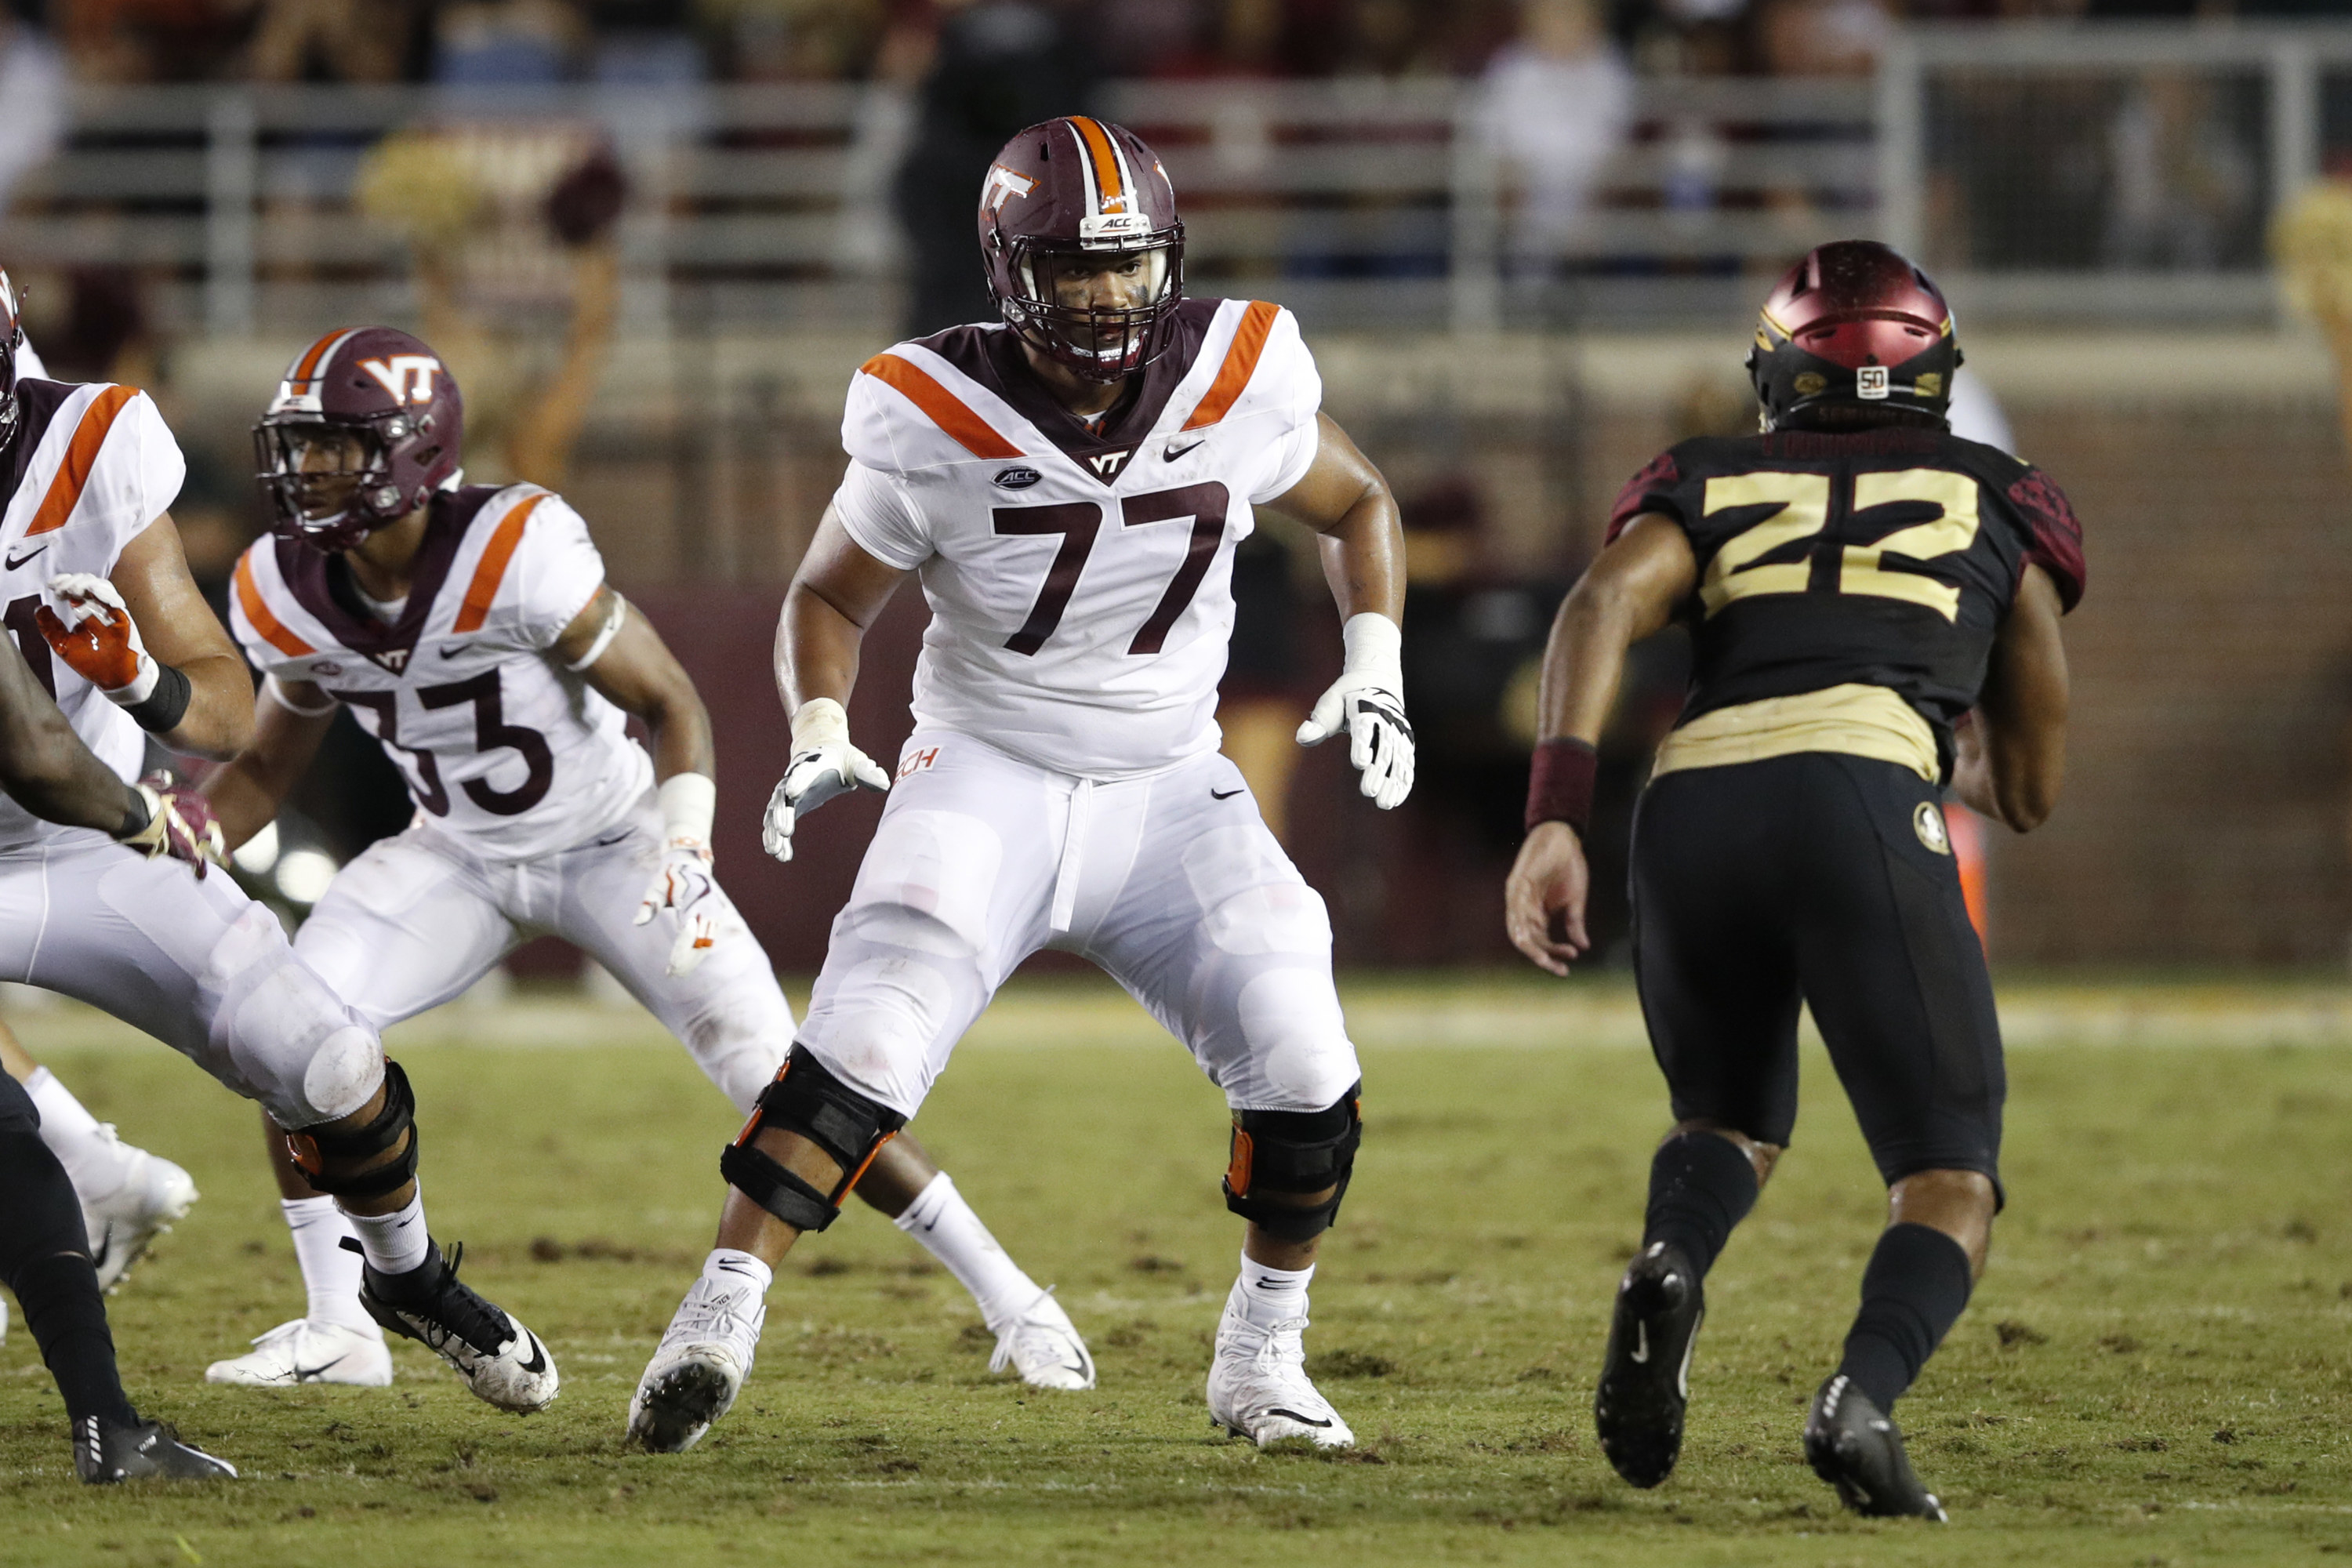 Virginia Tech's Christian Darrisaw blocking on offensive line